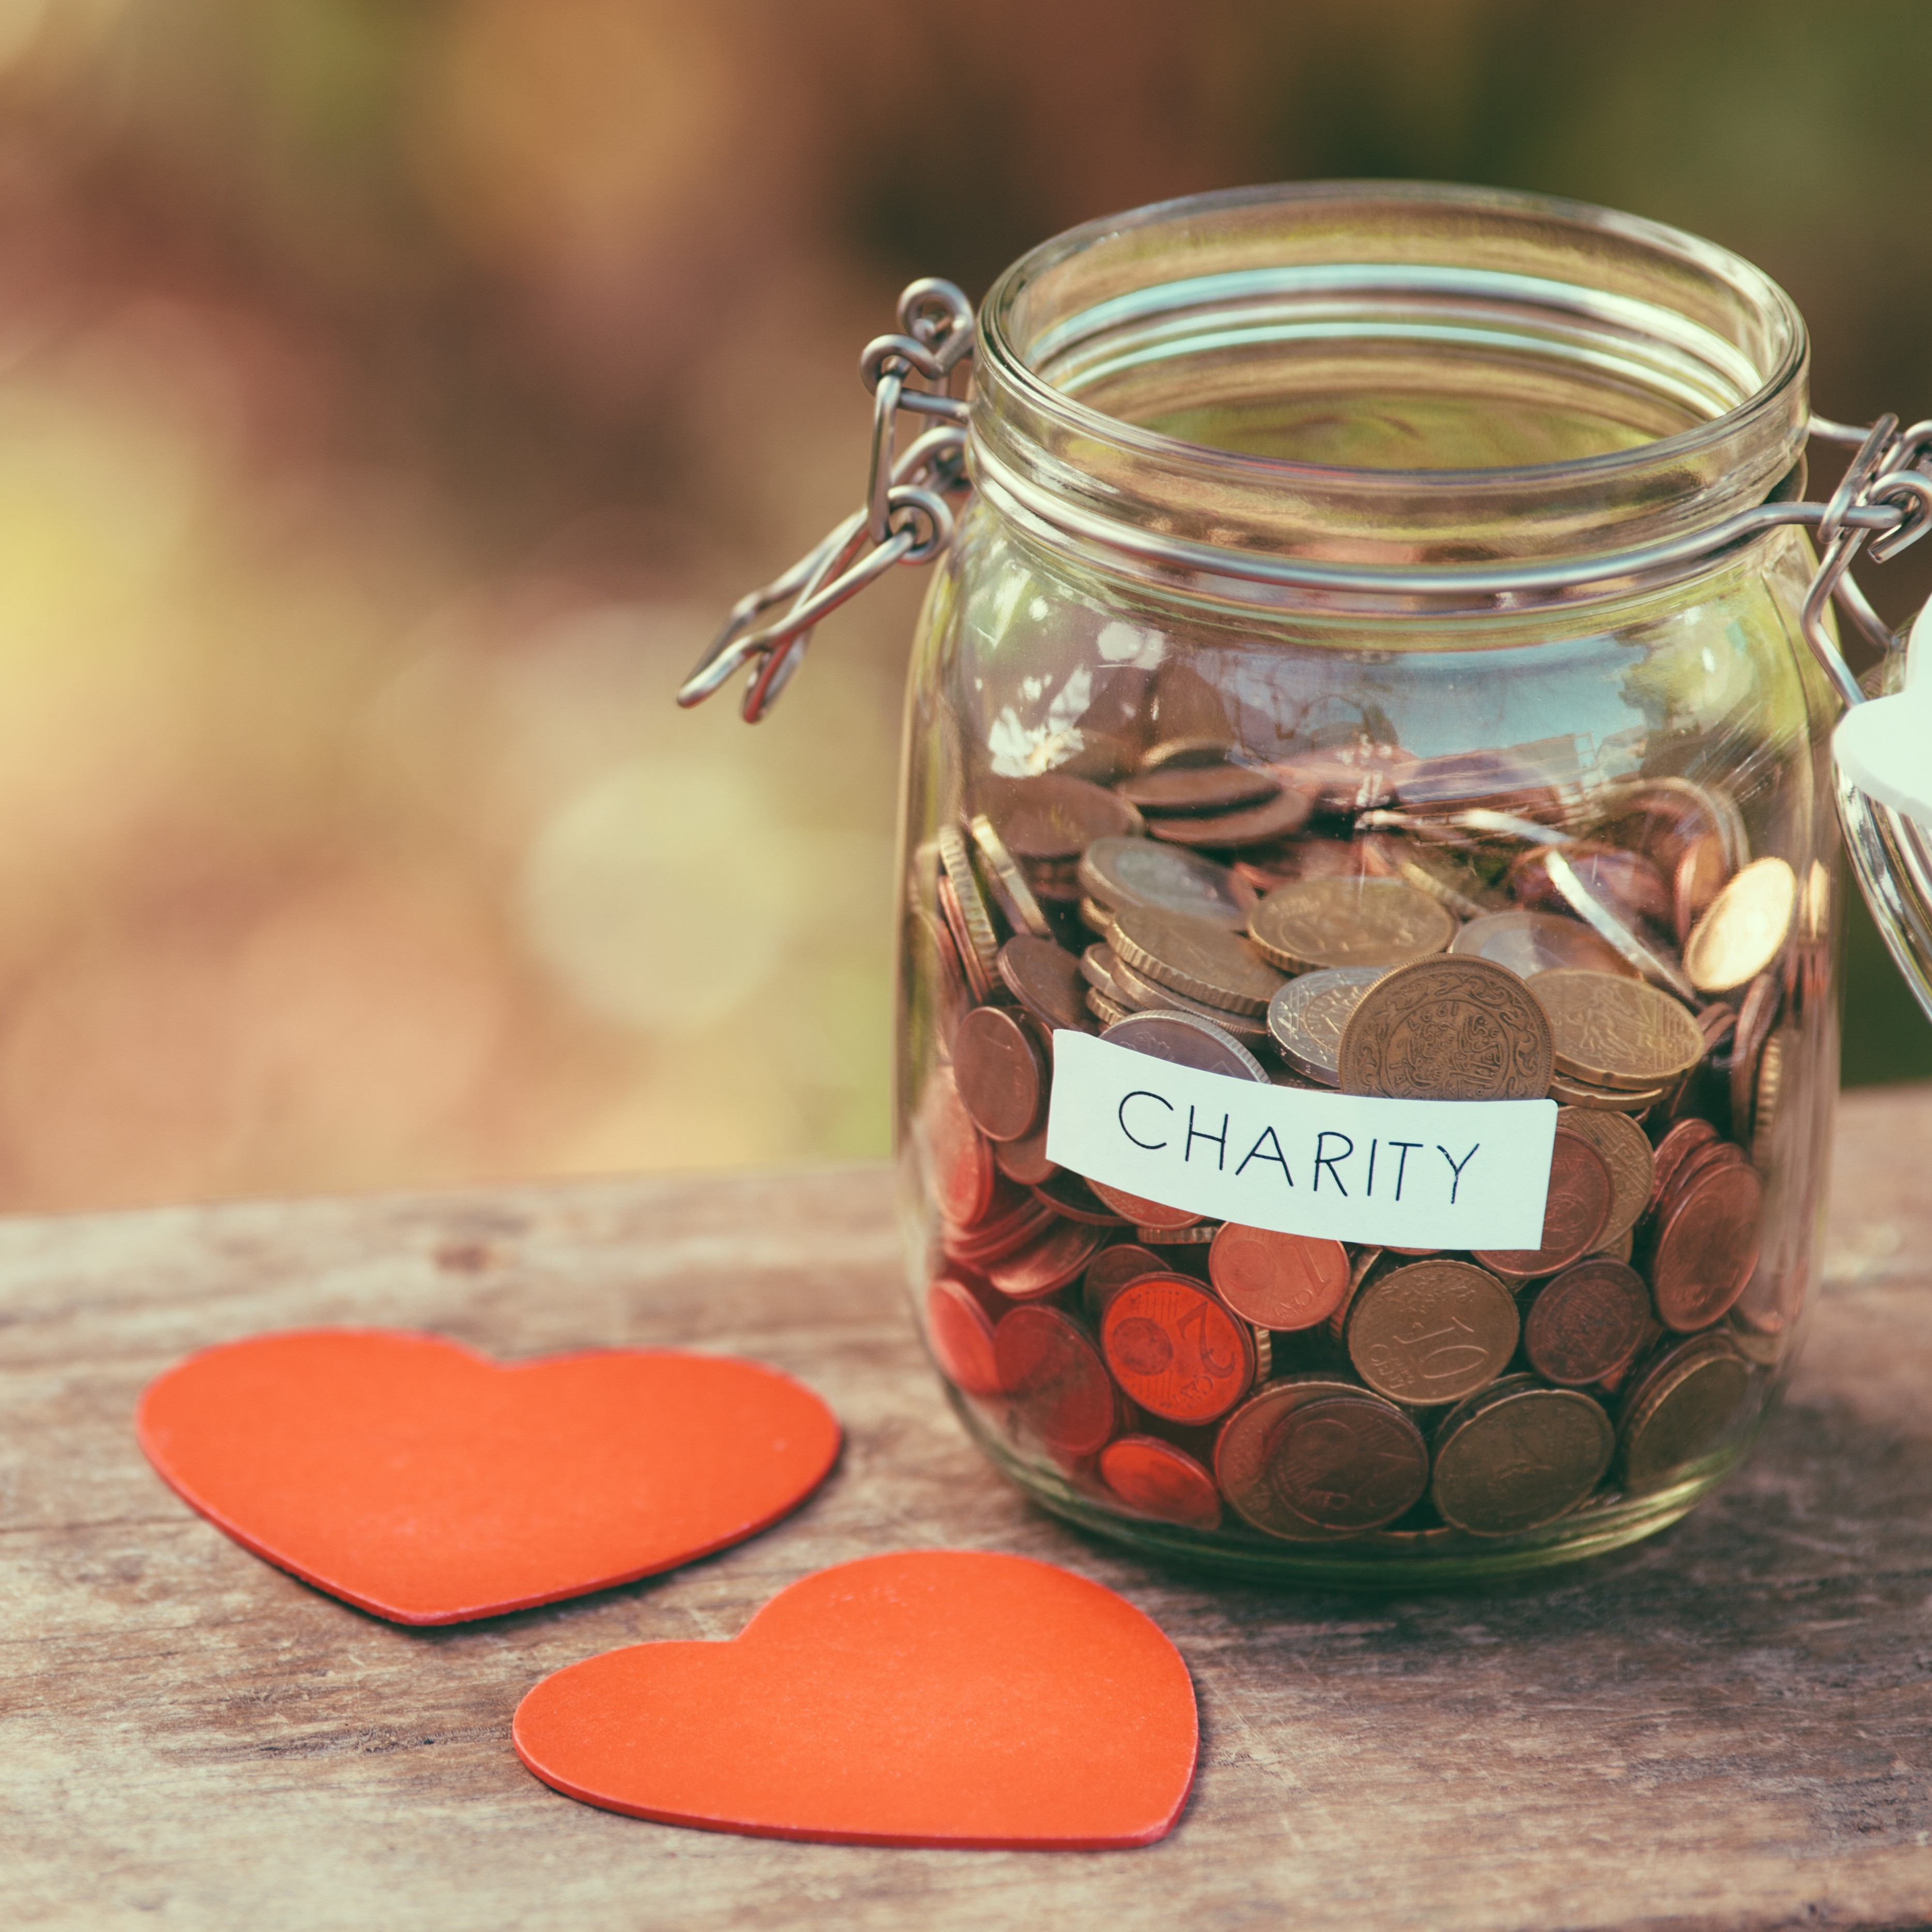 Charities supporting the elderly